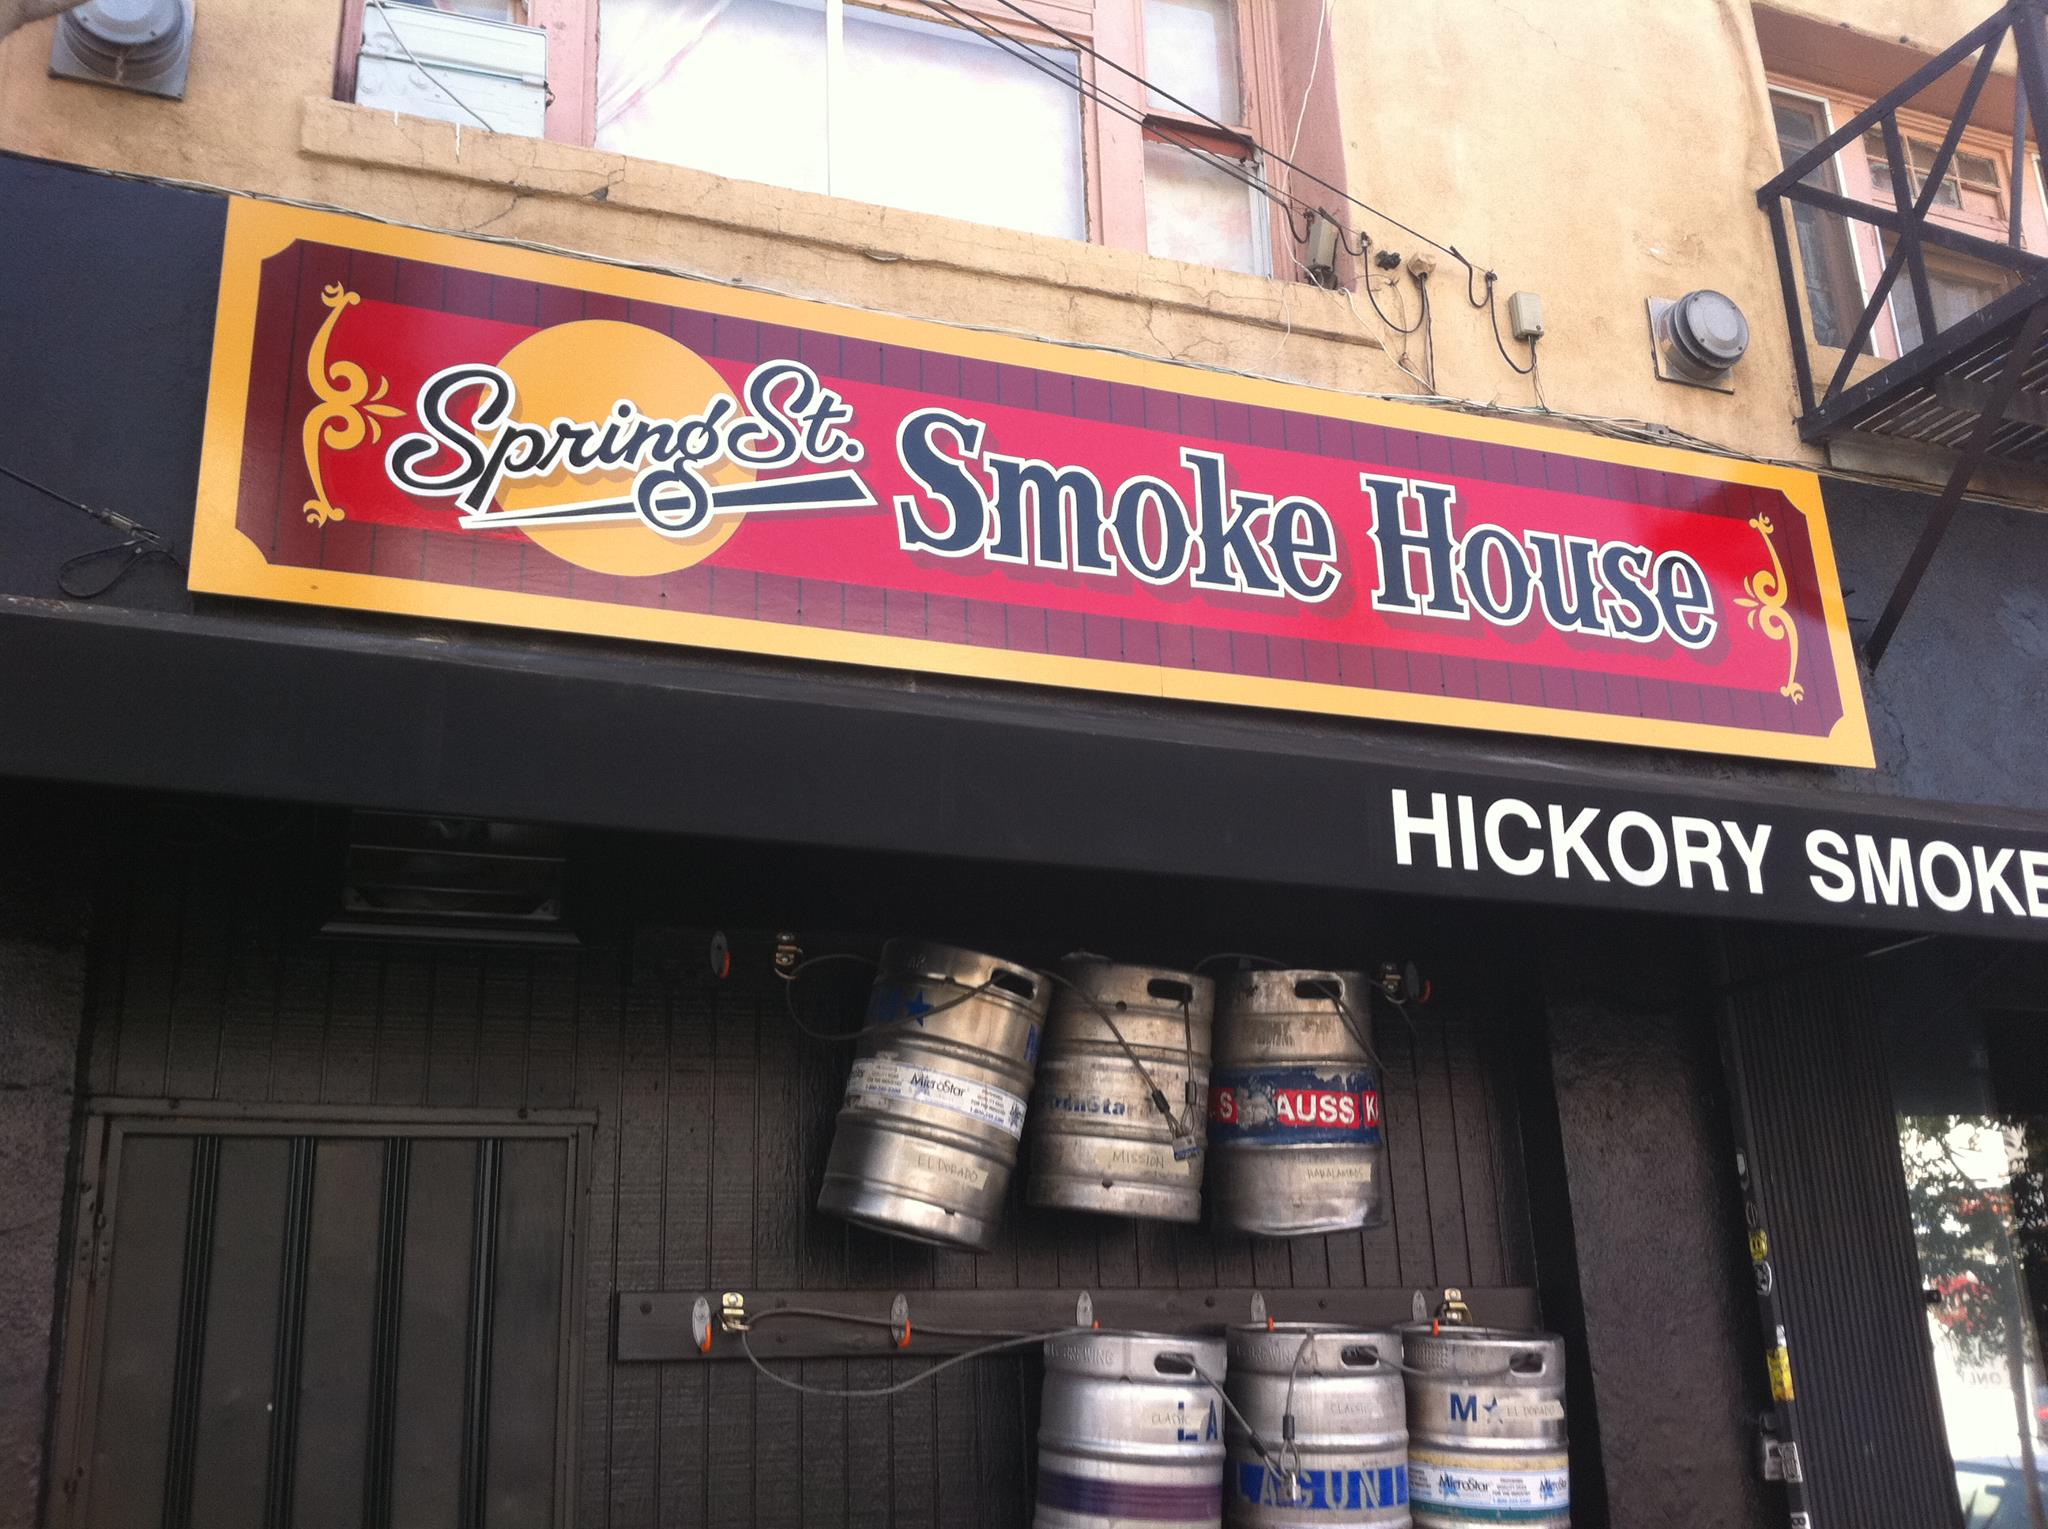 Spring Street Smoke House is steps away from the Red, Purple and Gold Lines at Union Station. But is it any good?